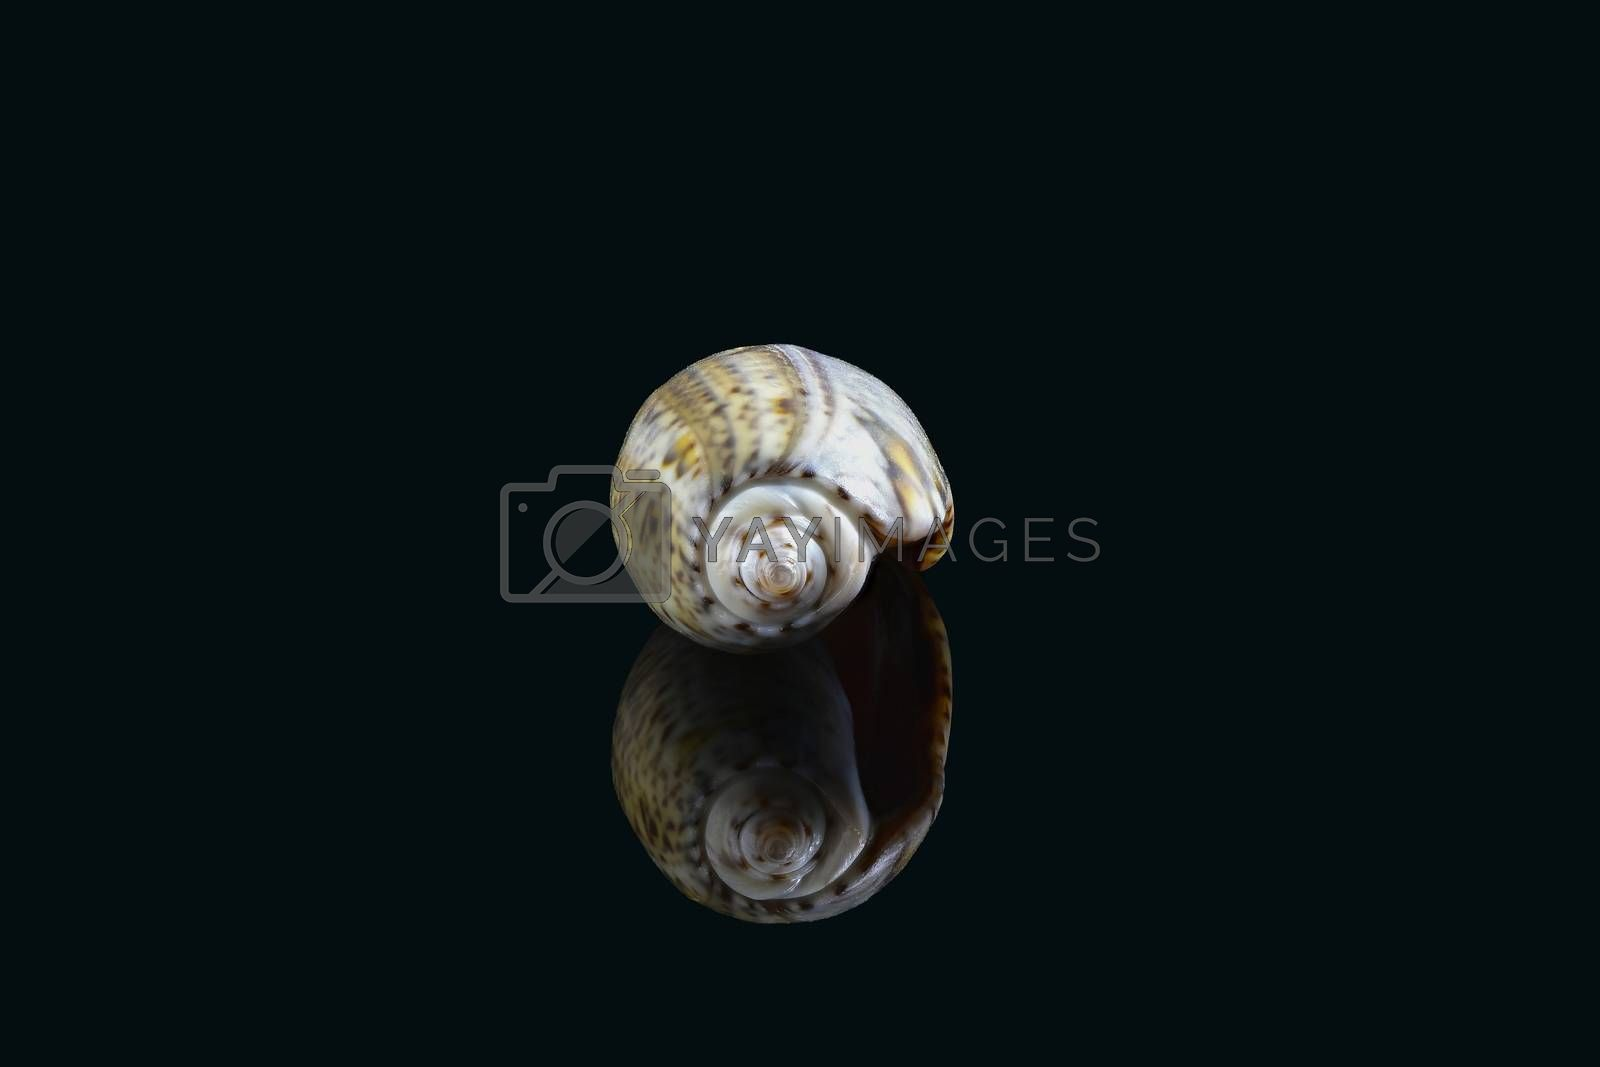 Olive snail (Olividae); A smooth, glossy shell with a large cylindrical whorl and a small conical spire at one end. They come in many colors and are predatory sea snails. Dubai, UAE